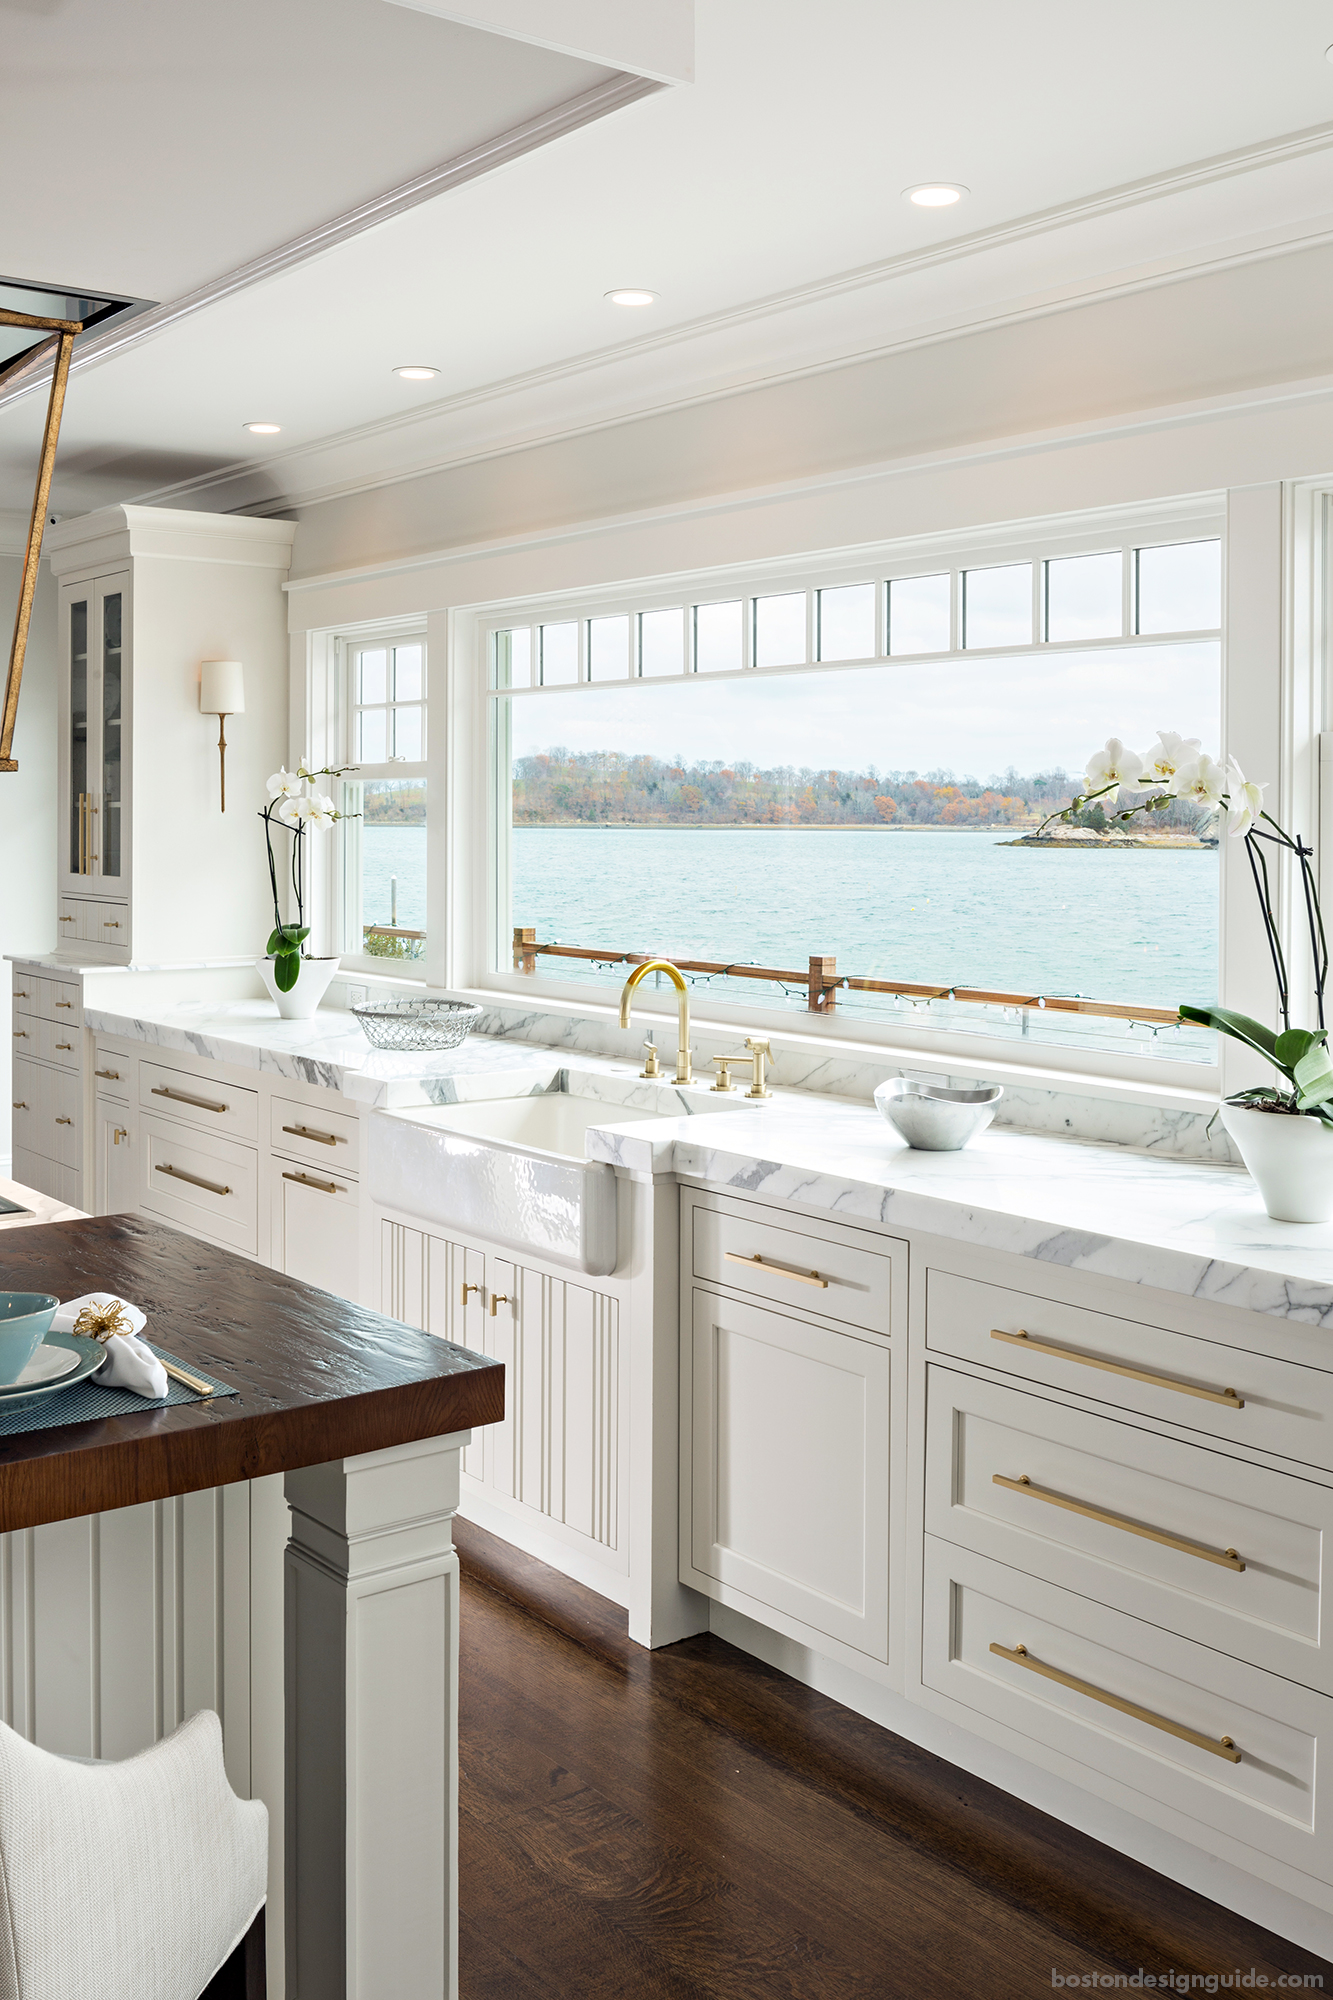 residential home cabinetry and design center in New England